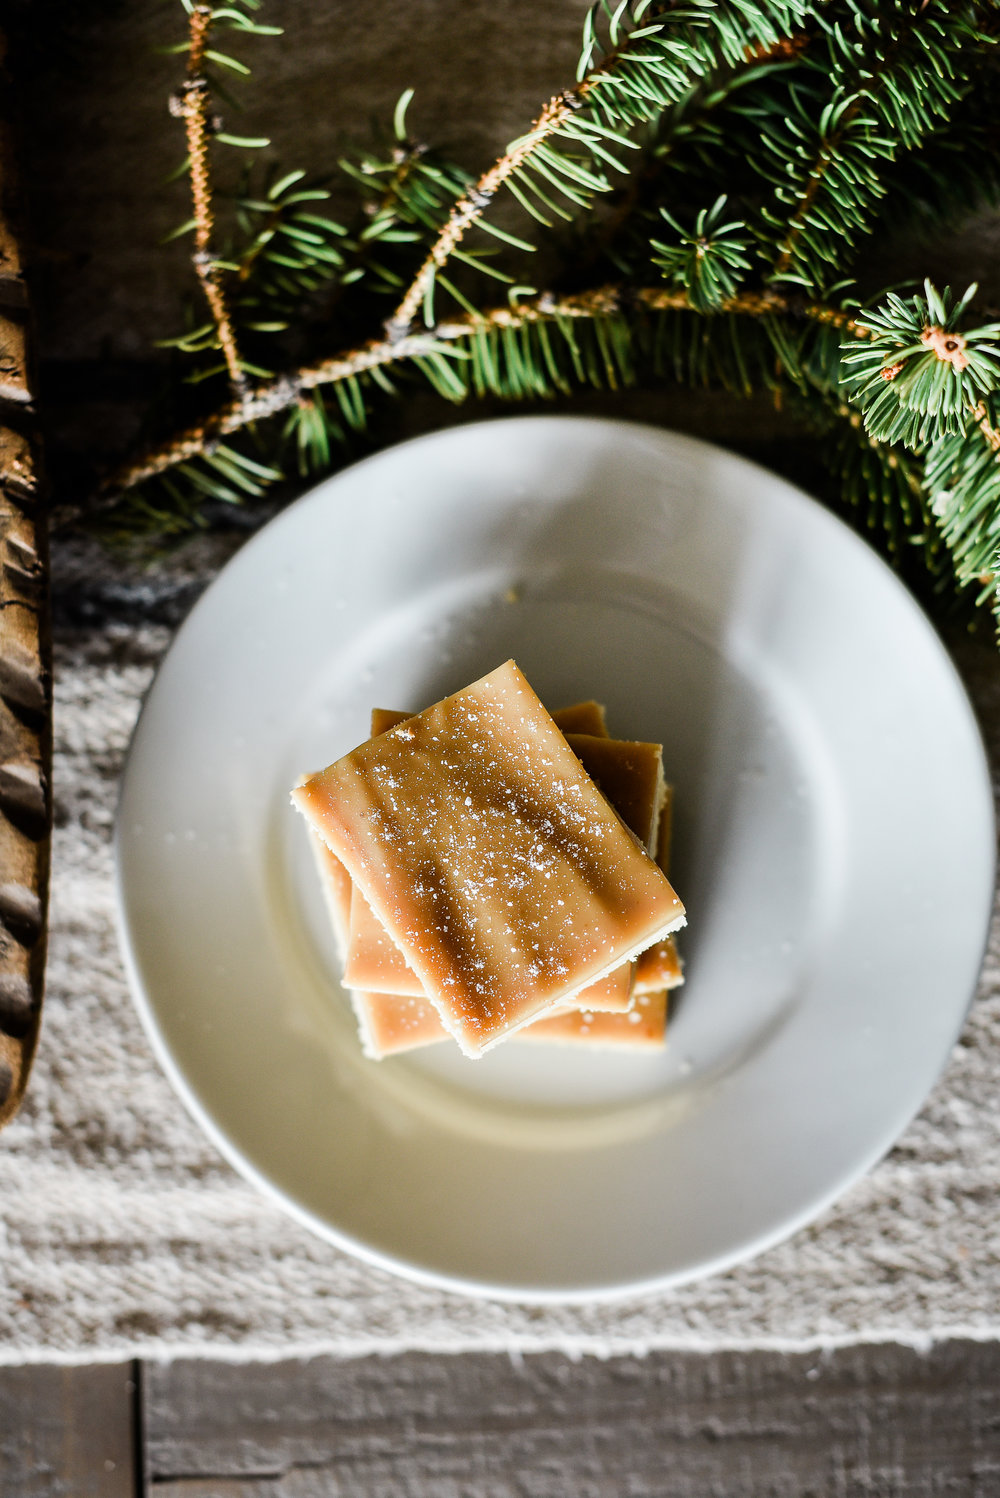 These Christmas shortbread bars are topped with caramel & sprinkled with salt - they are delicious and perfect for this year's cookie swap! boxwoodavenue.com #christmascookies #christmasshortbread